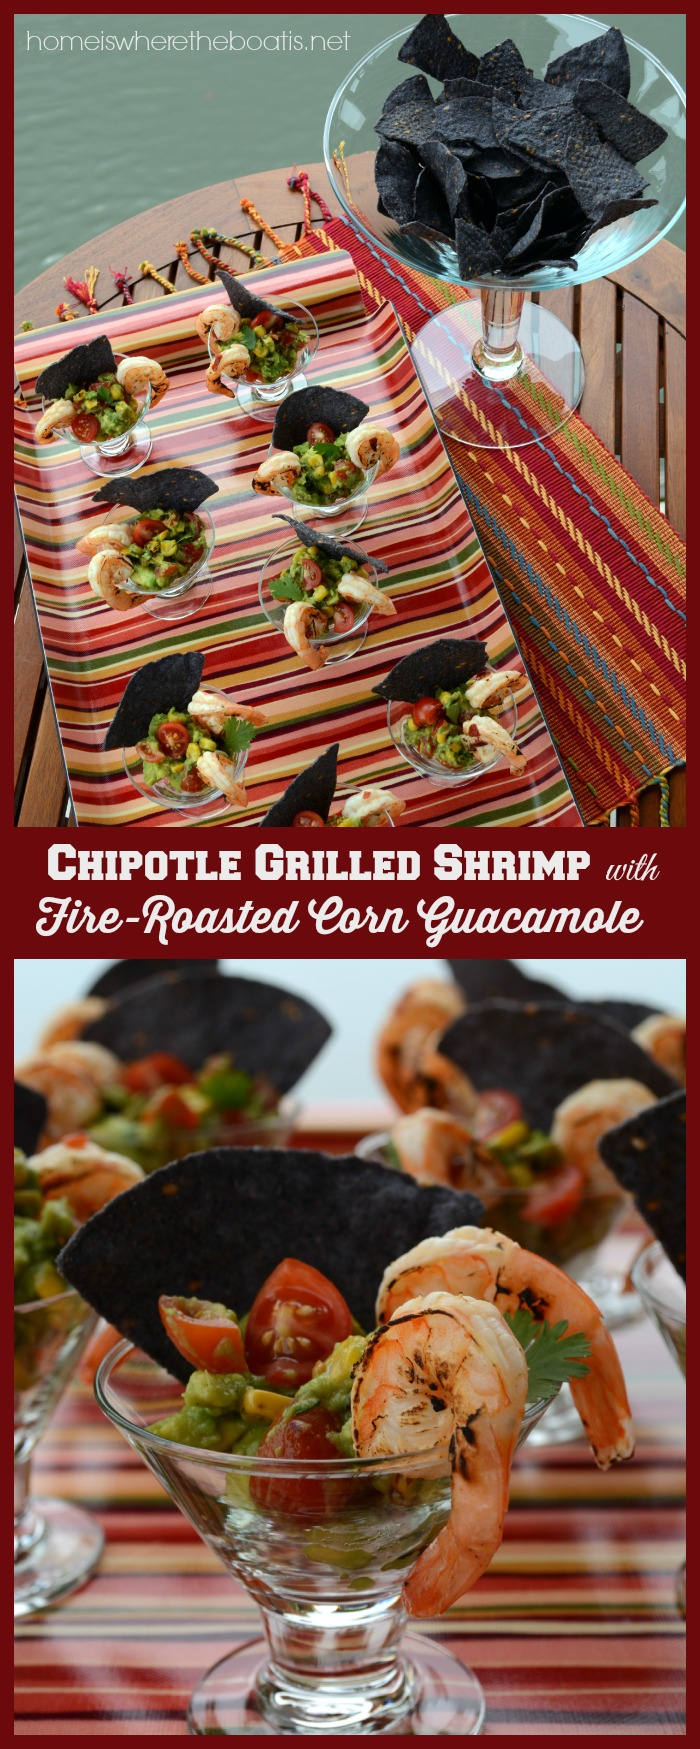 Chipotle Grilled Shrimp with Fire Roasted Corn Guacamole